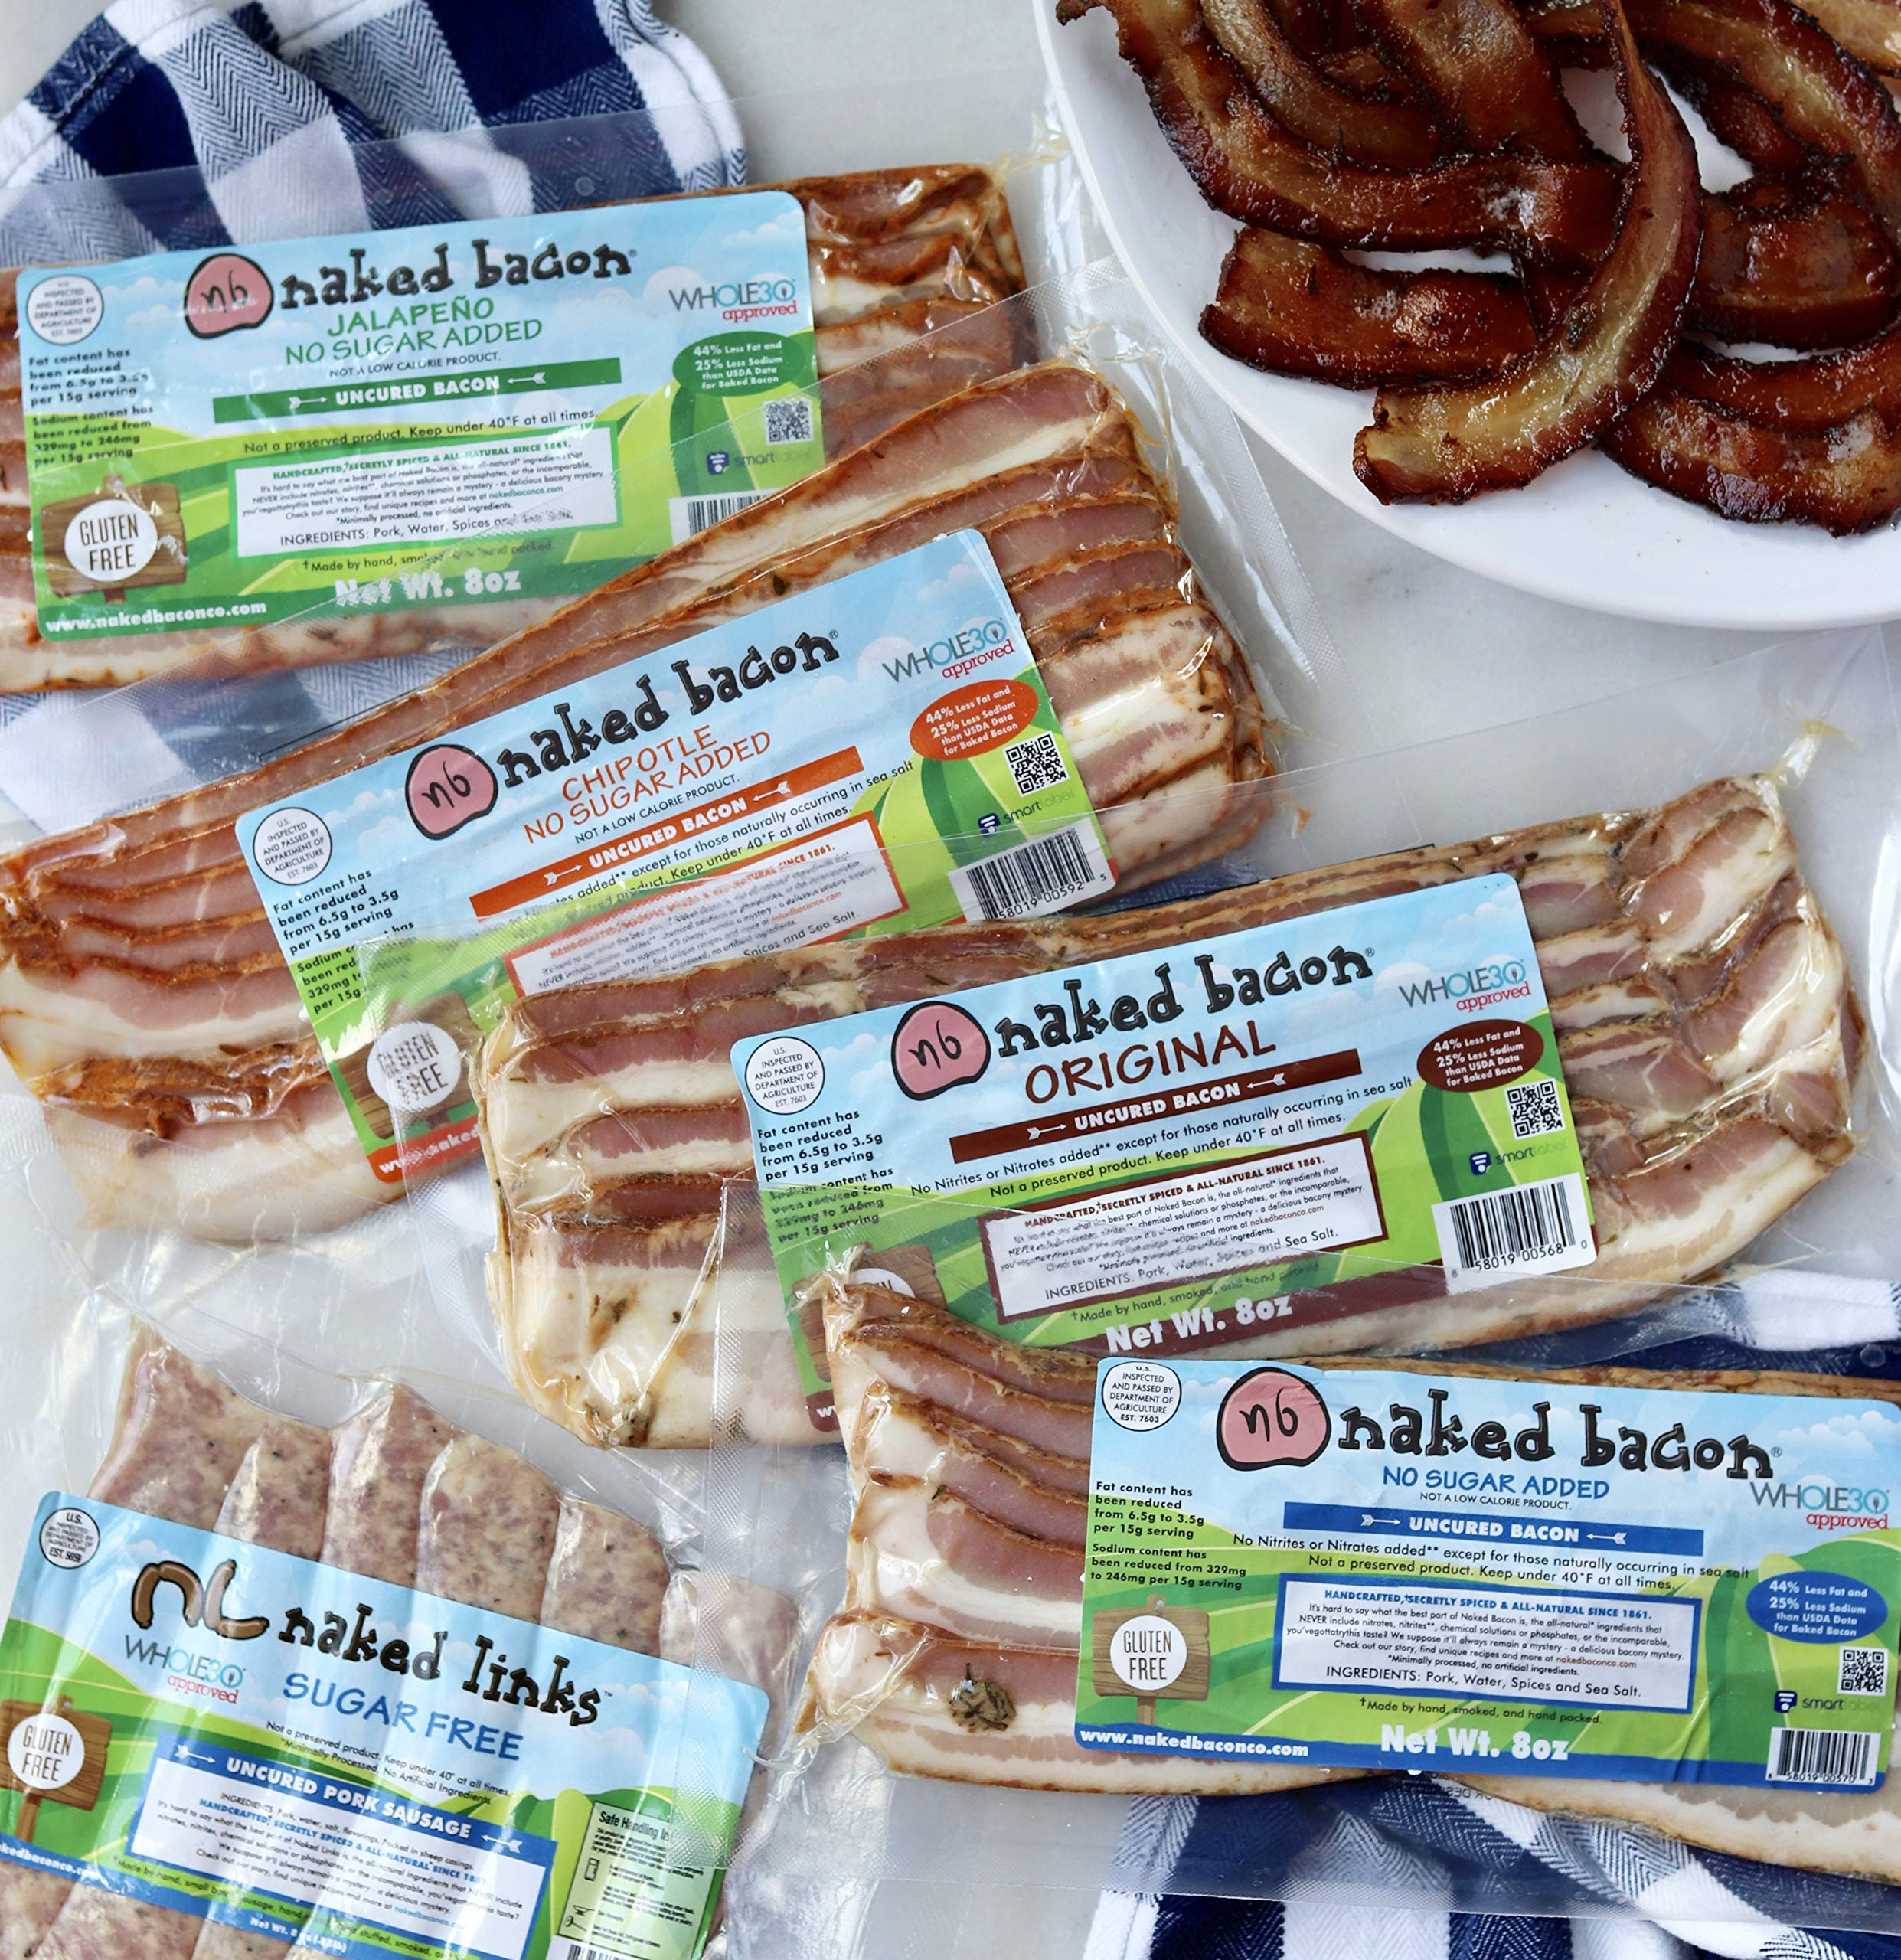 No Sugar Added Whole30 Approved Bacon - Multipack (5 Packages) by NB Naked Bacon (Image #2)